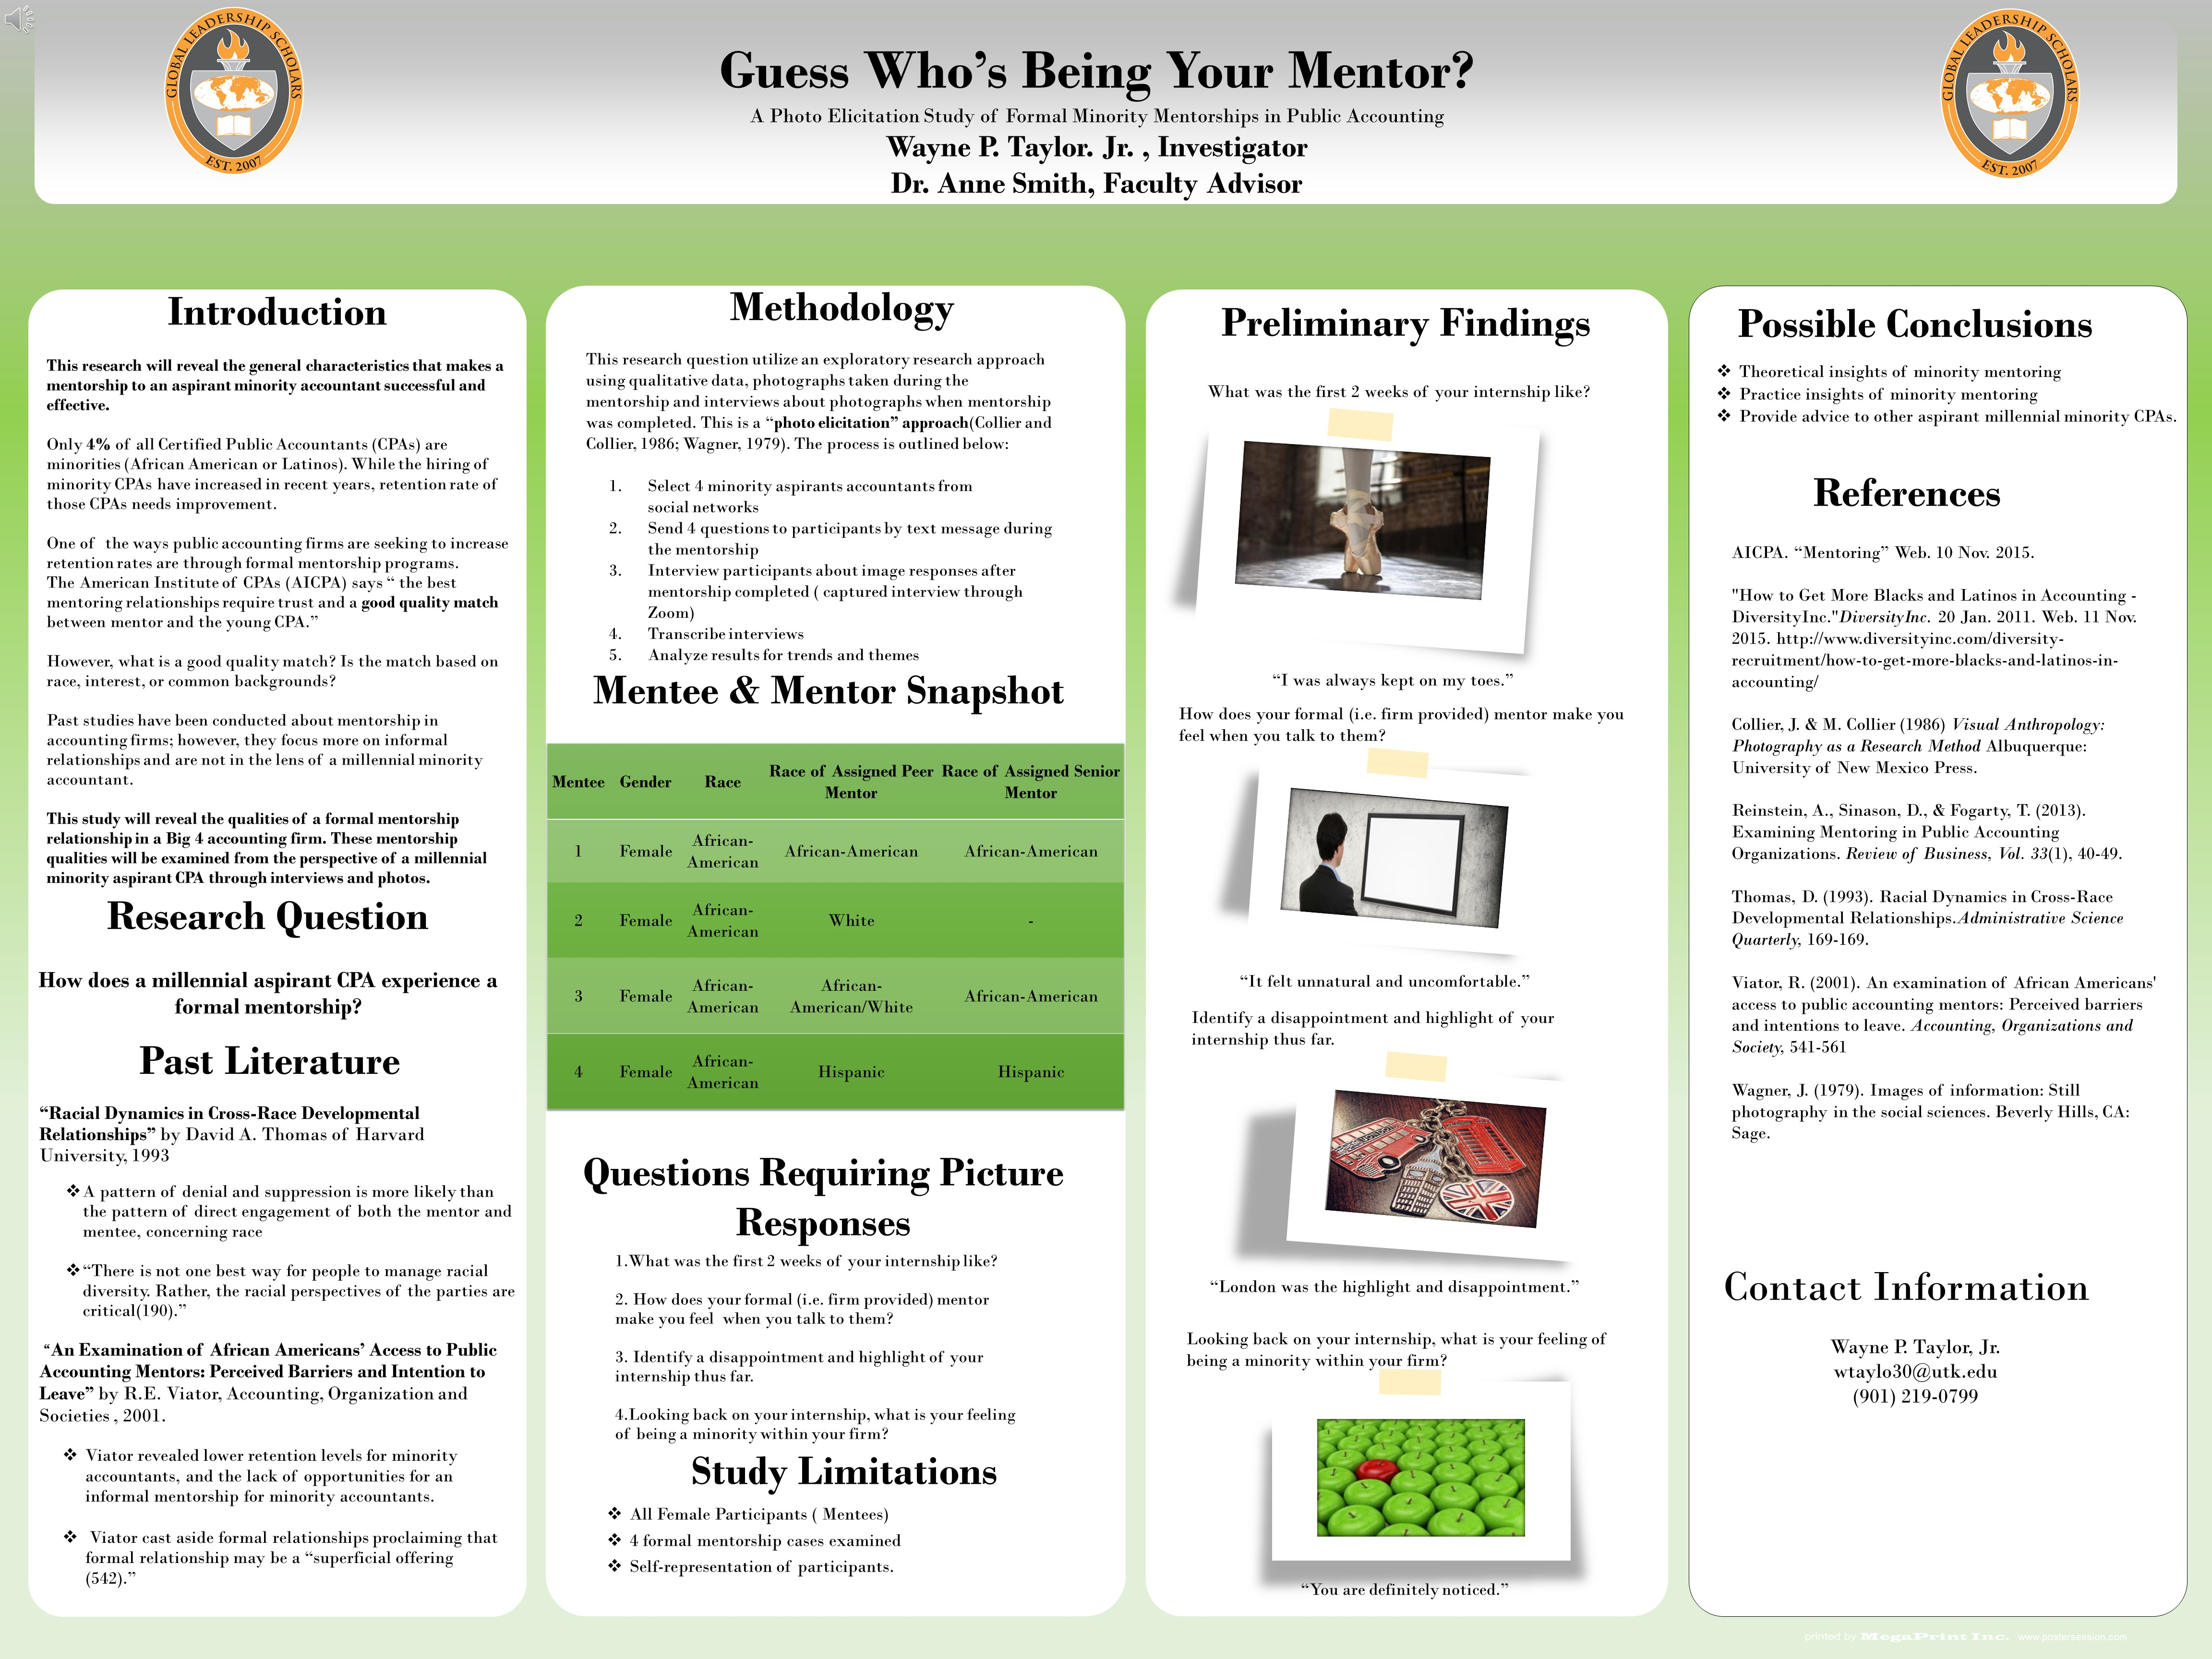 Guess Who's Being Your Mentor?  A Photo Elicitation Study of Formal Minority Mentorships in Public Accounting